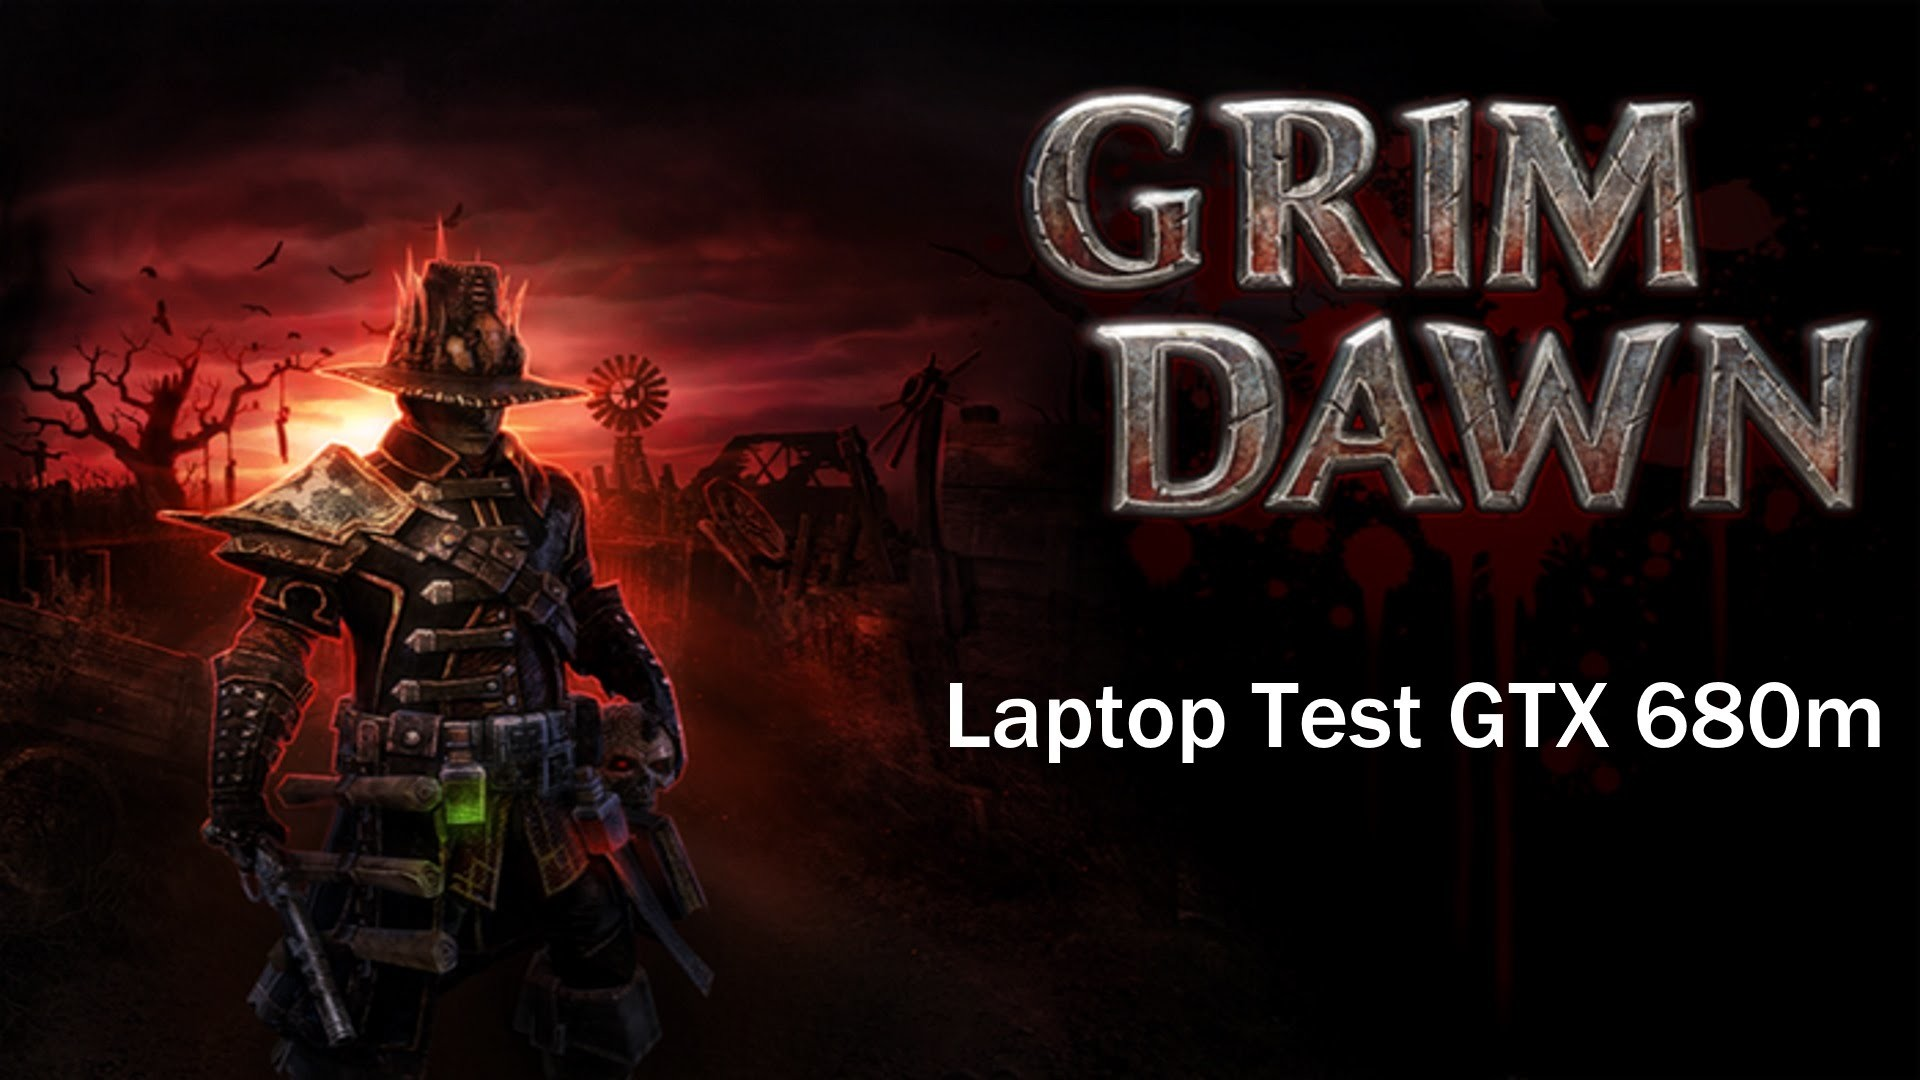 Grim Dawn Laptop Test GTX 680m max settings with FPS